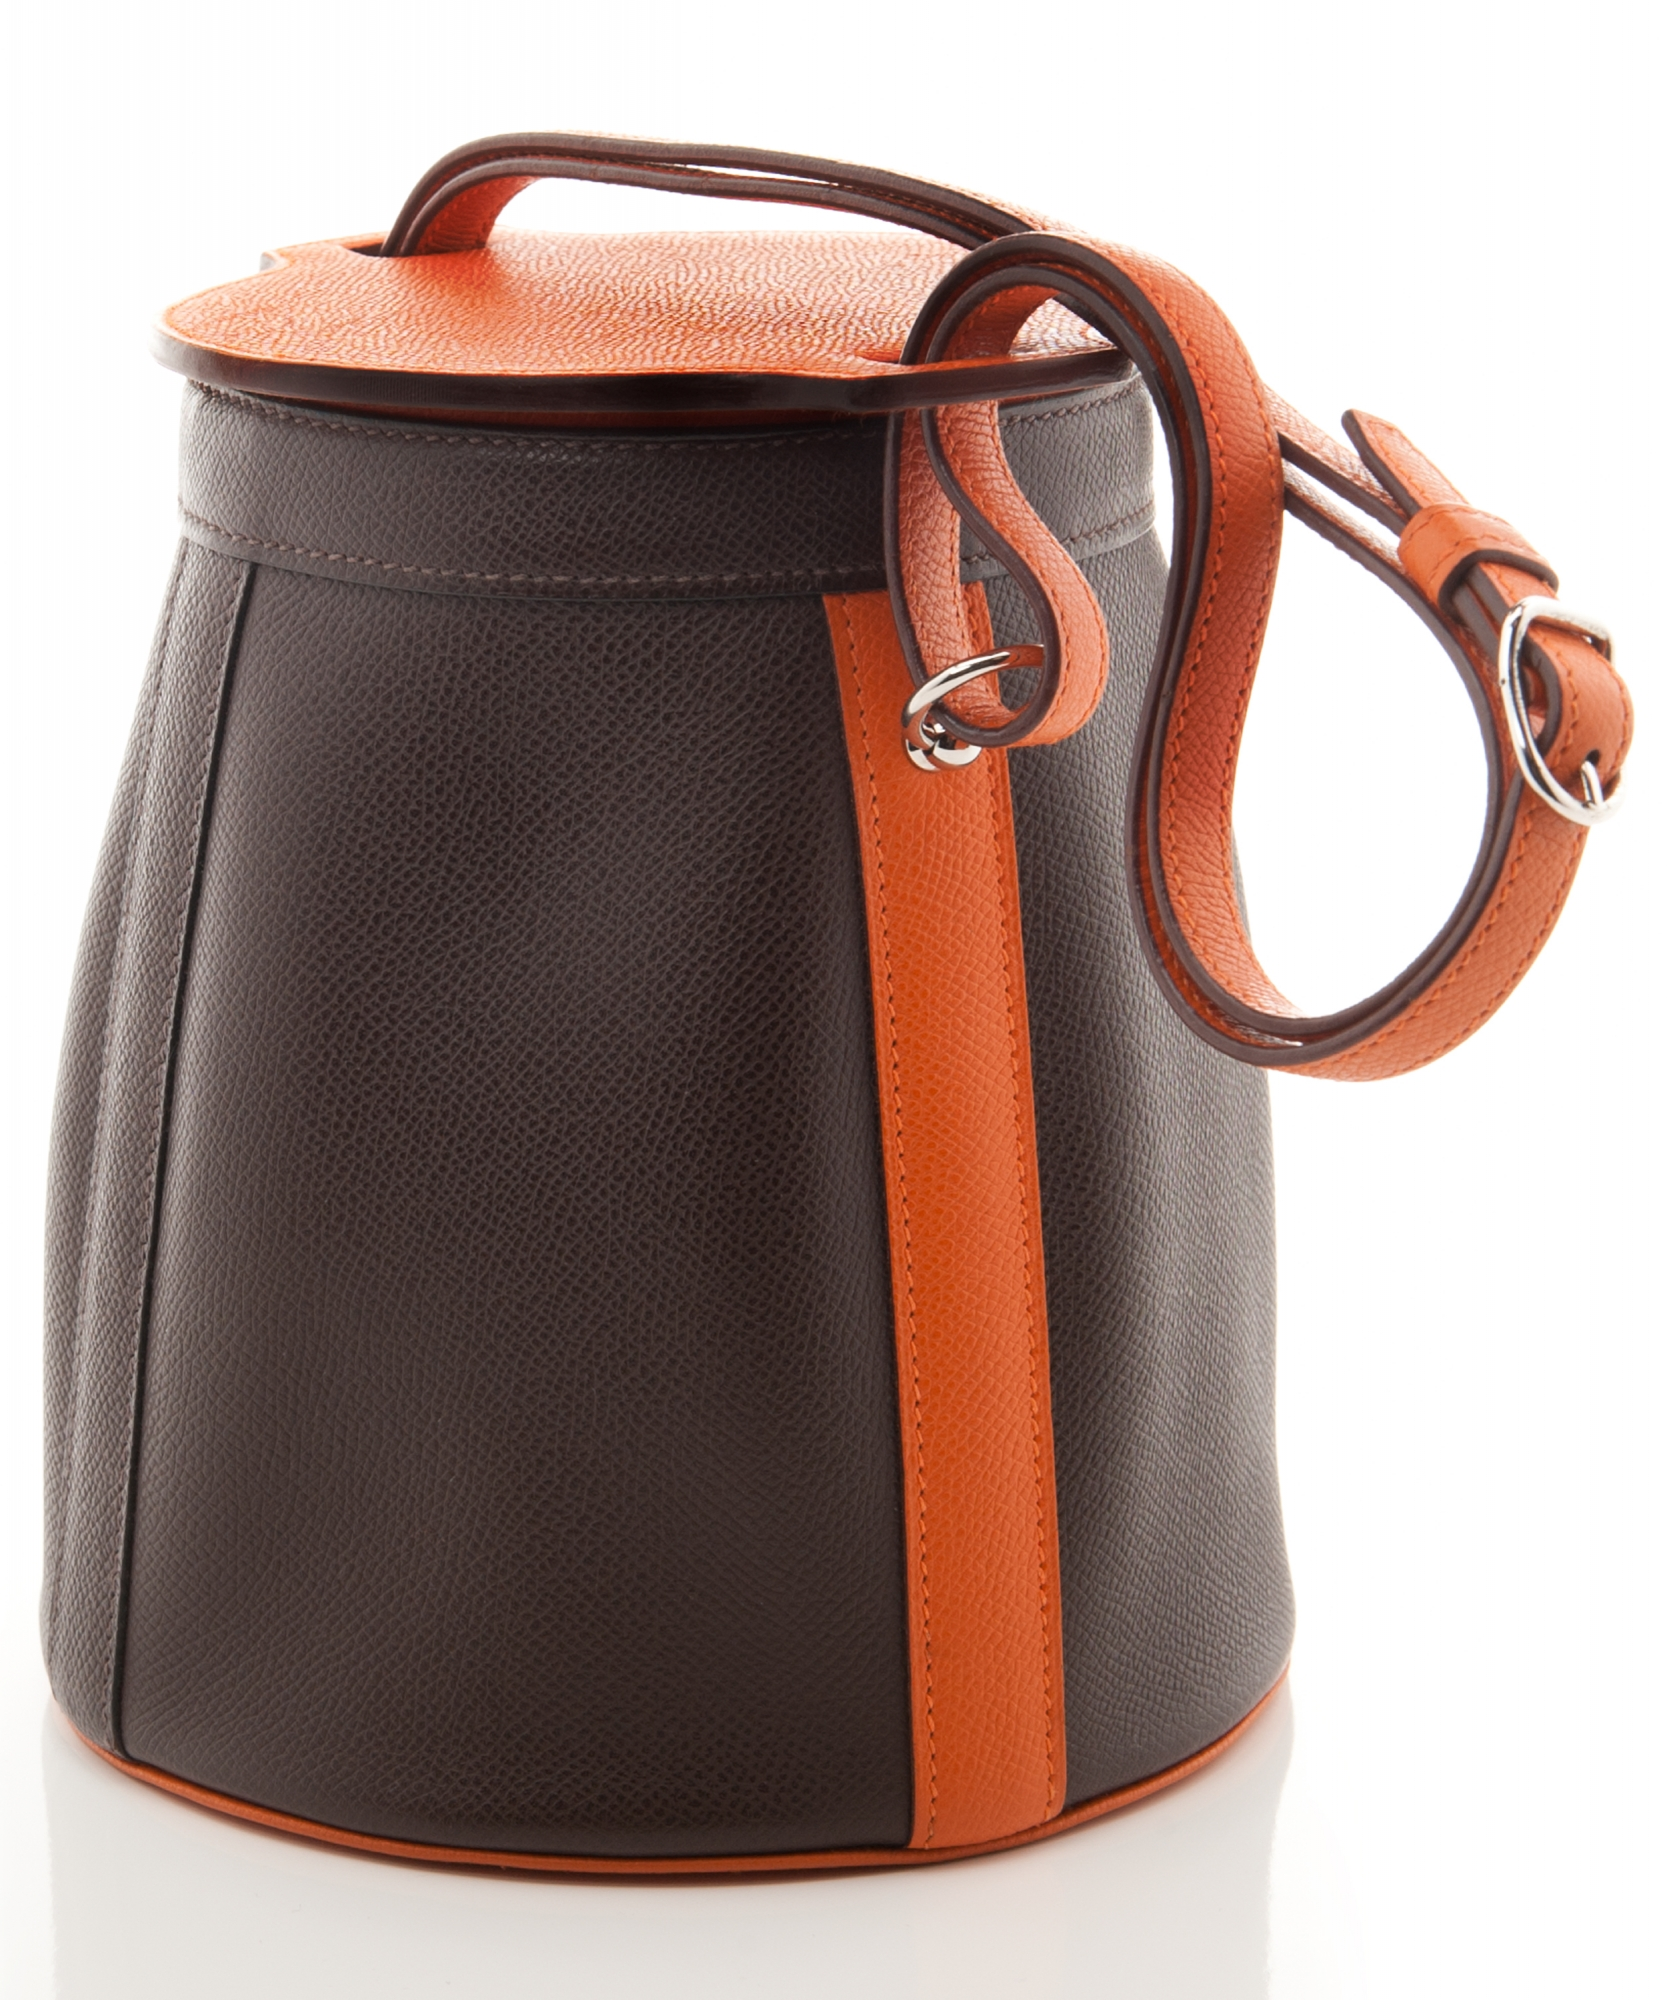 Herm 232 S Brown Orange Leather Farming Bag Artlistings